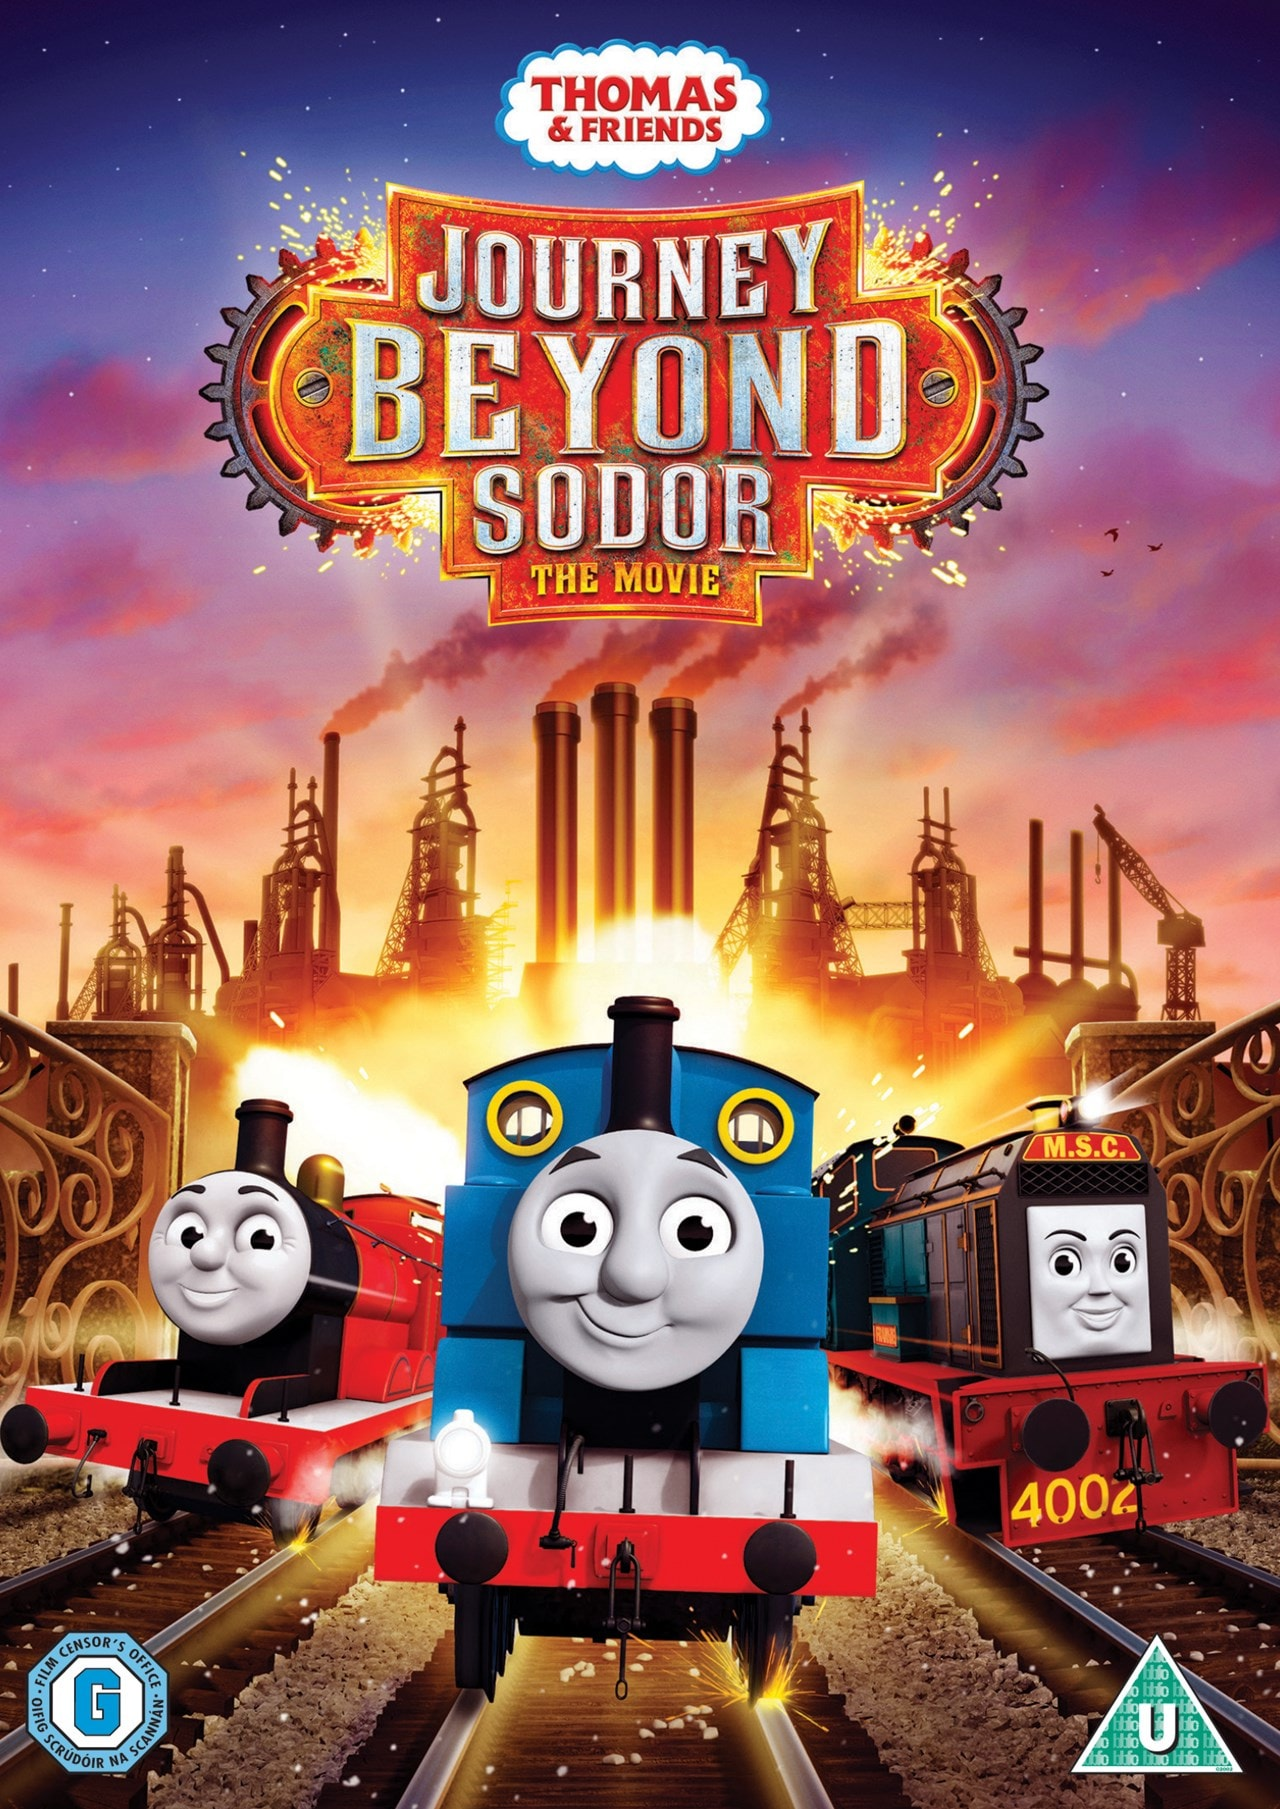 Thomas & Friends: Journey Beyond Sodor - The Movie - 1